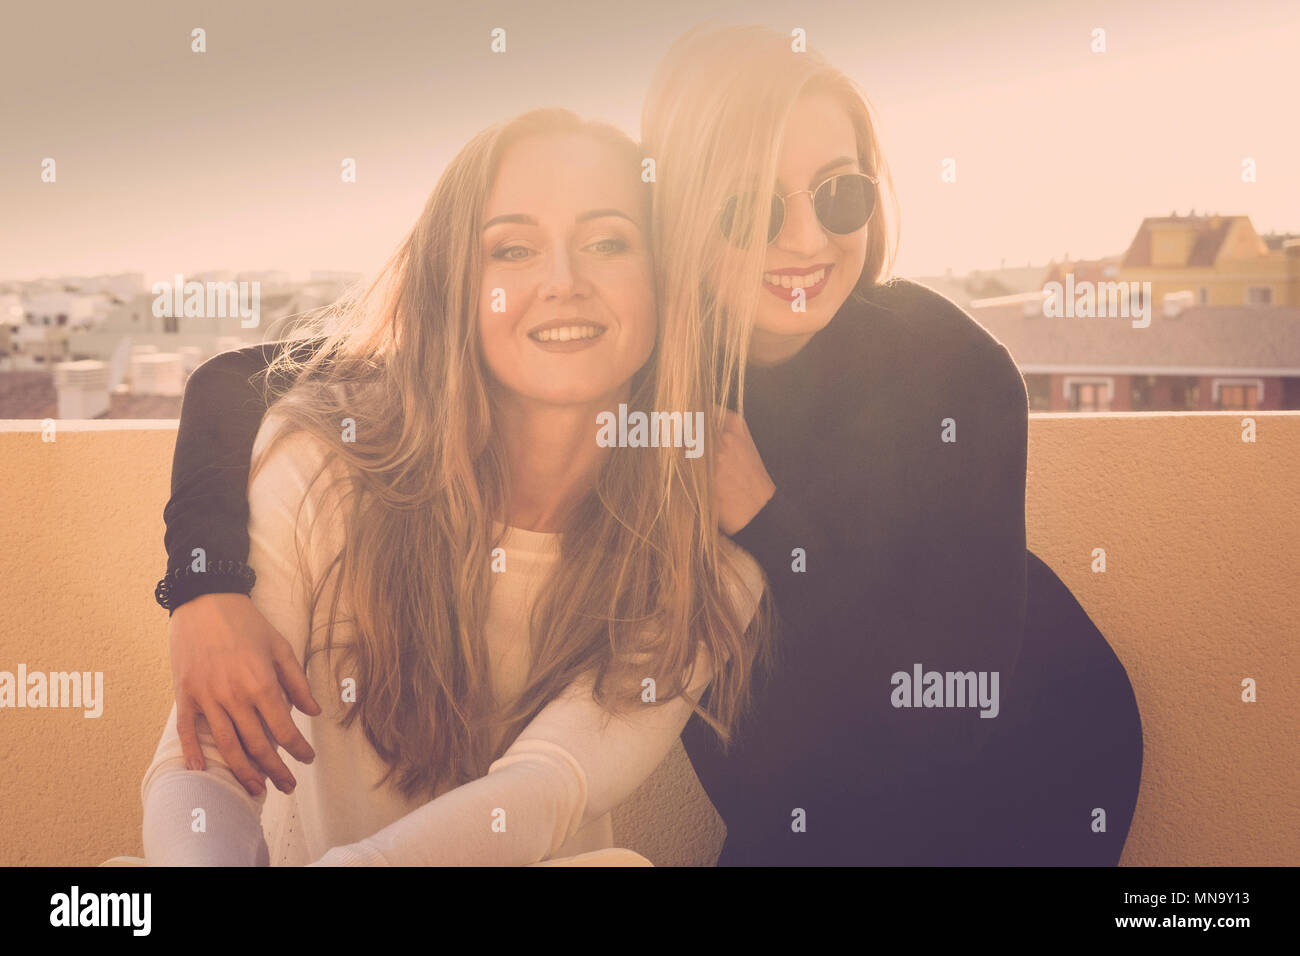 smile and fun for a blonde girls couple outdoor on the terrace roodtop. sunlight in backlight bright image with friendship concept. beautiful models h - Stock Image